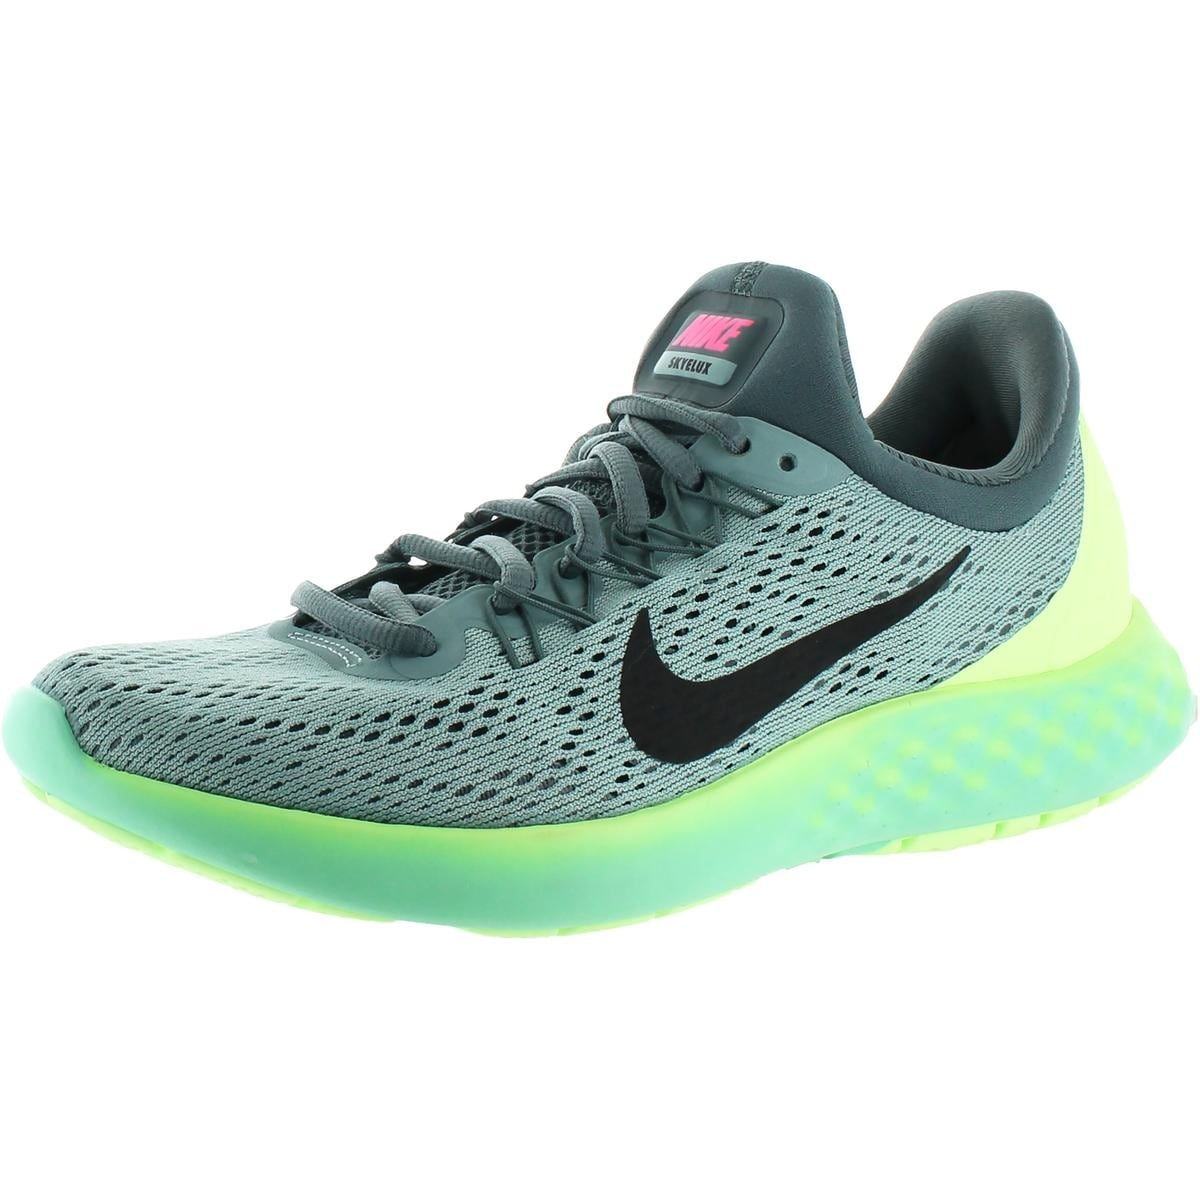 863e5277ff1 Nike Womens Lunar Skyelux Running Shoes Round Toe Lace-Up